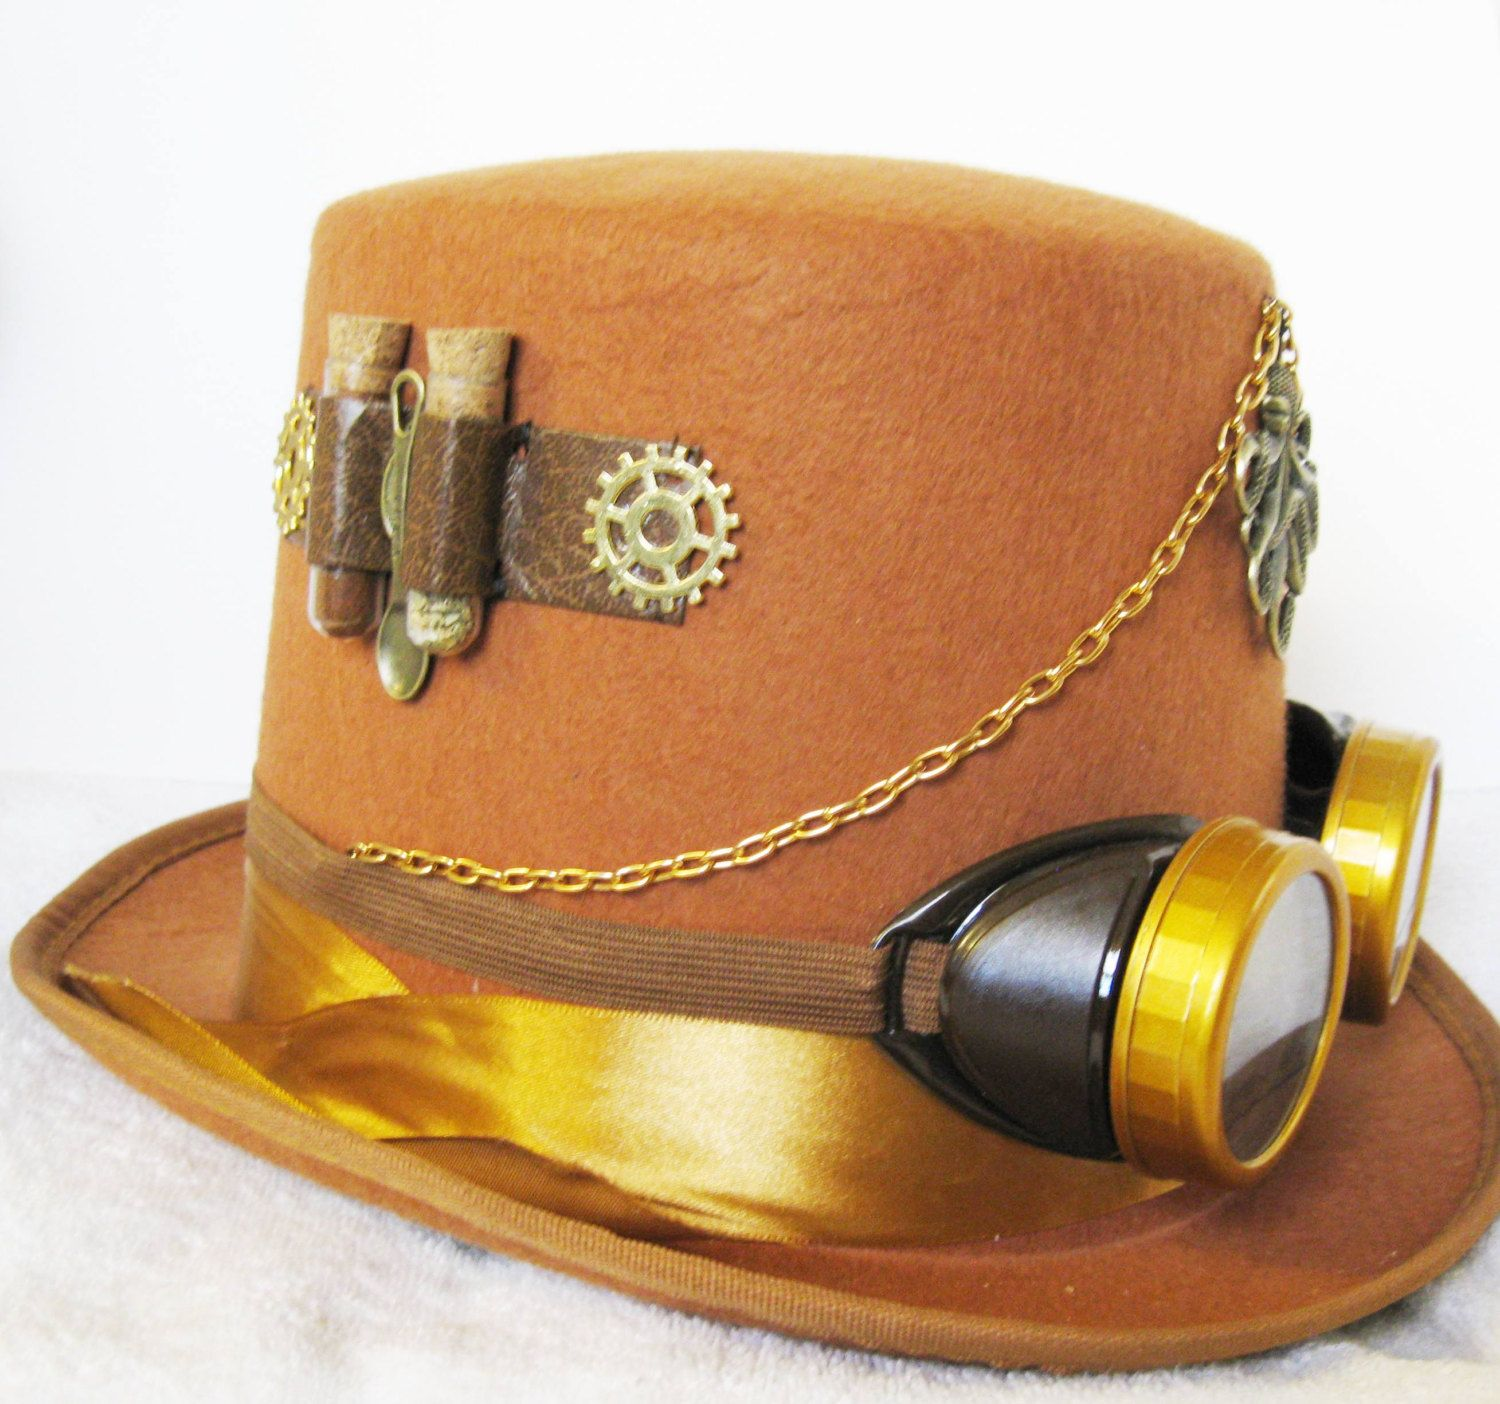 Steampunk Brown Octopus Top Hat with Gold Goggles.....FREE SHIP..... Cos Play, Hand Sewn Parts, watch parts Steam Punk, Gear, Cog by upcountryangel on Etsy